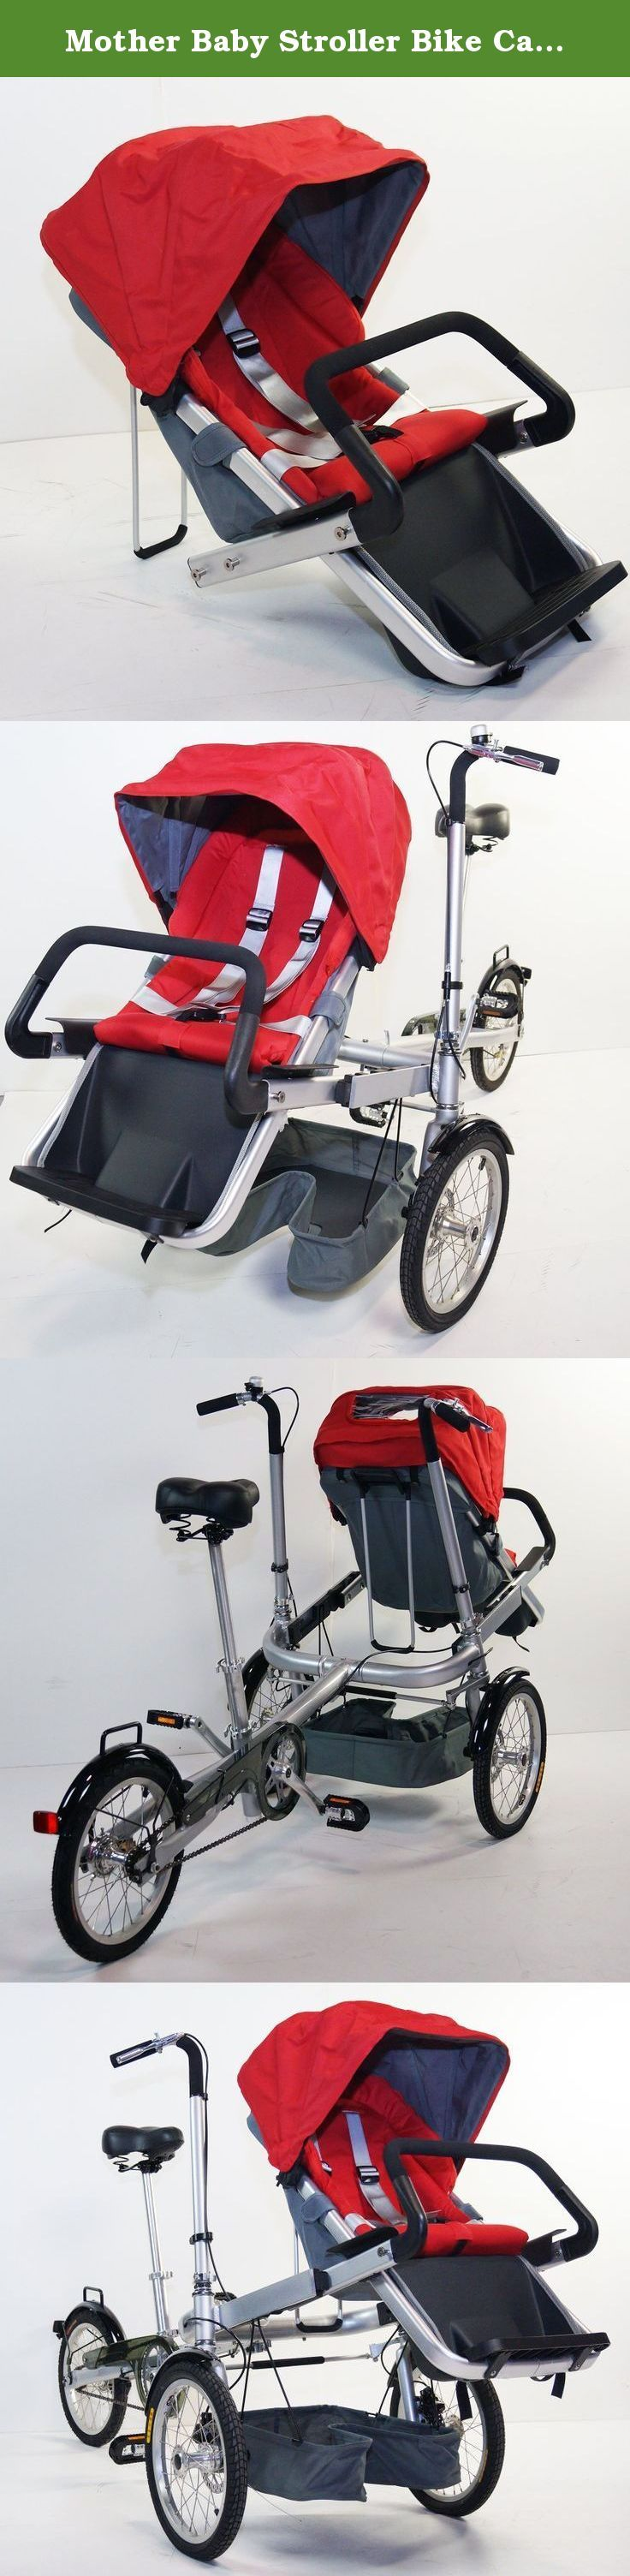 Mother Baby Stroller Bike Carrier 3 Wheels Folding Bicycle